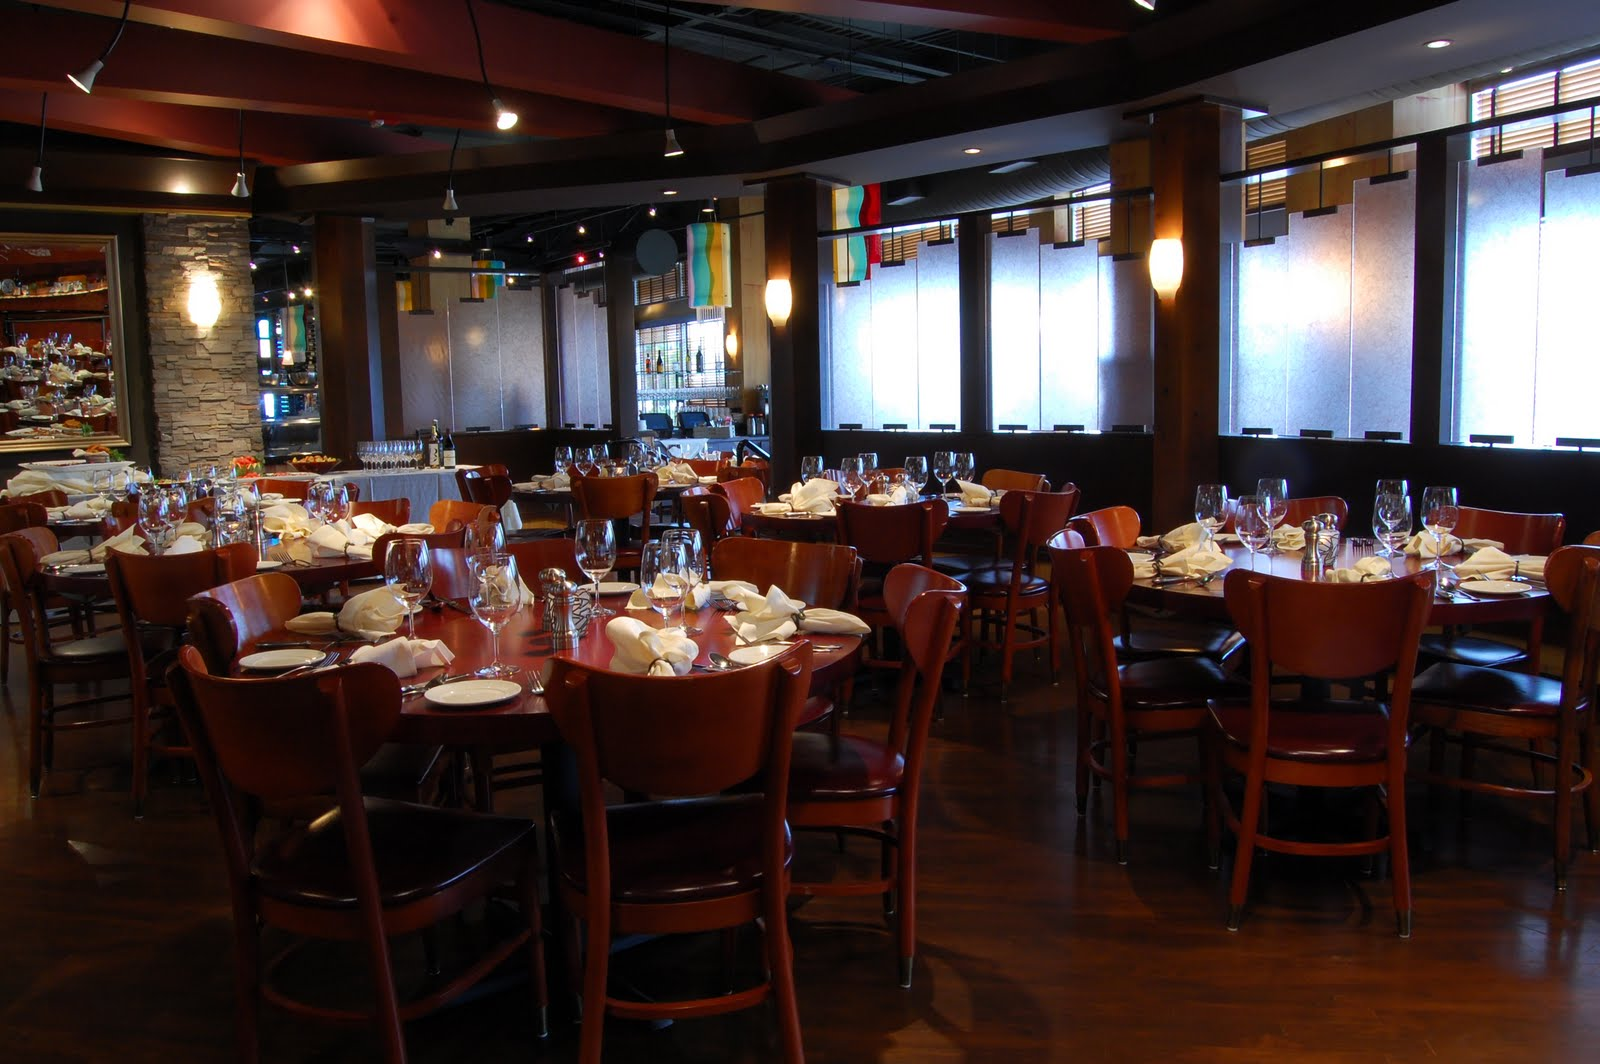 Schwartz brothers restaurants december 2010 for Best private dining rooms seattle